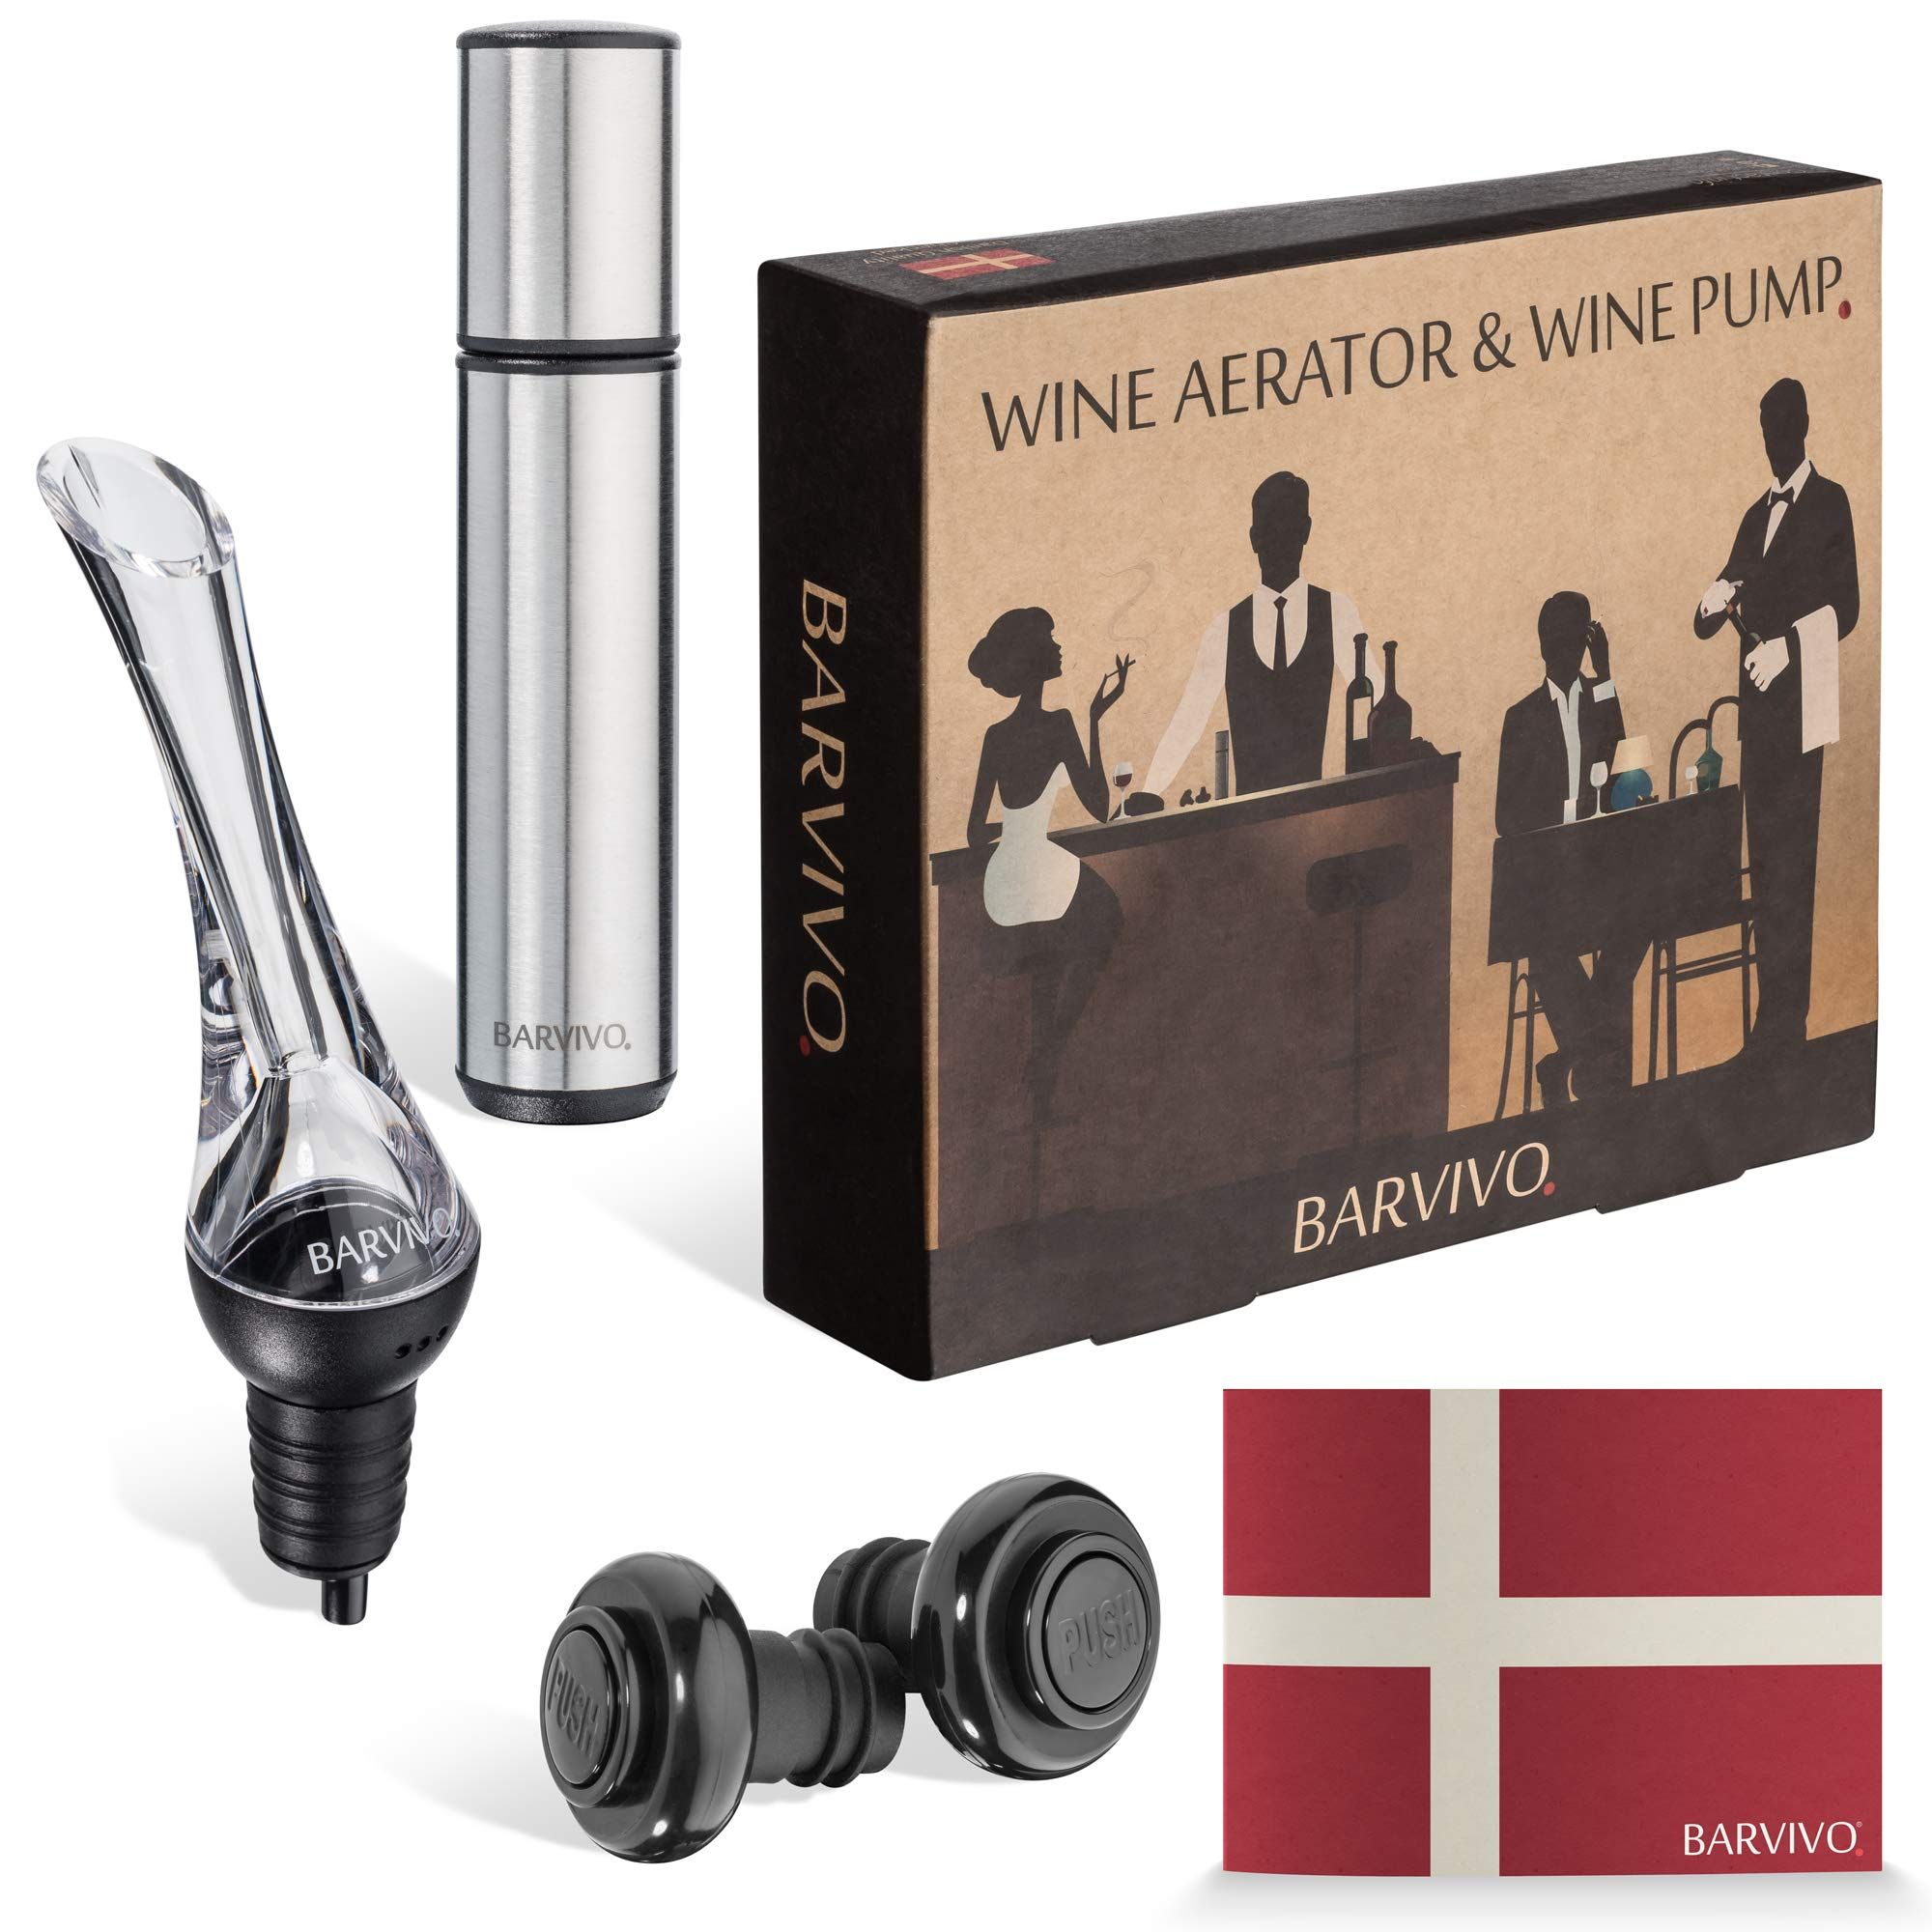 Wine Aerator and Wine Saver Pump with 2 Vacuum Bottle Stoppers by Barvivo - Pour, Aerate, Enjoy and Preserve Your Red Wine, it Will Taste 3 Times Better Than Originally and Stay at its Best for Days. by Barvivo